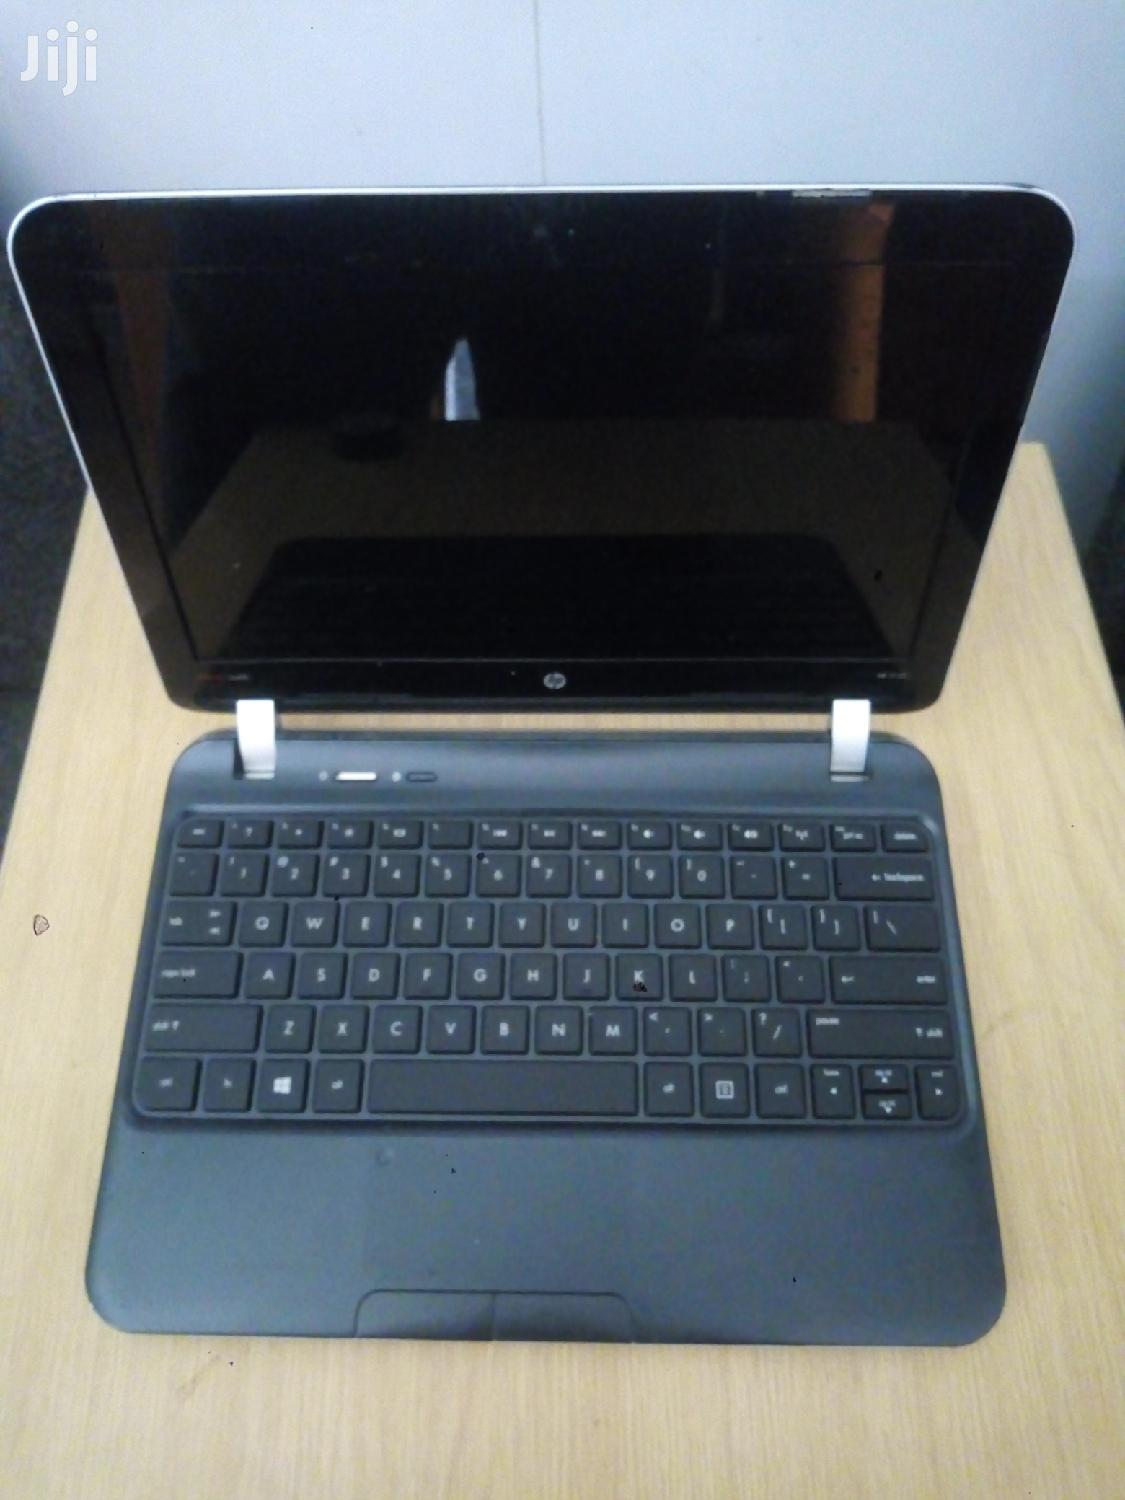 Laptop HP Mini 2133 3GB Intel HDD 320GB | Laptops & Computers for sale in Nairobi Central, Nairobi, Kenya